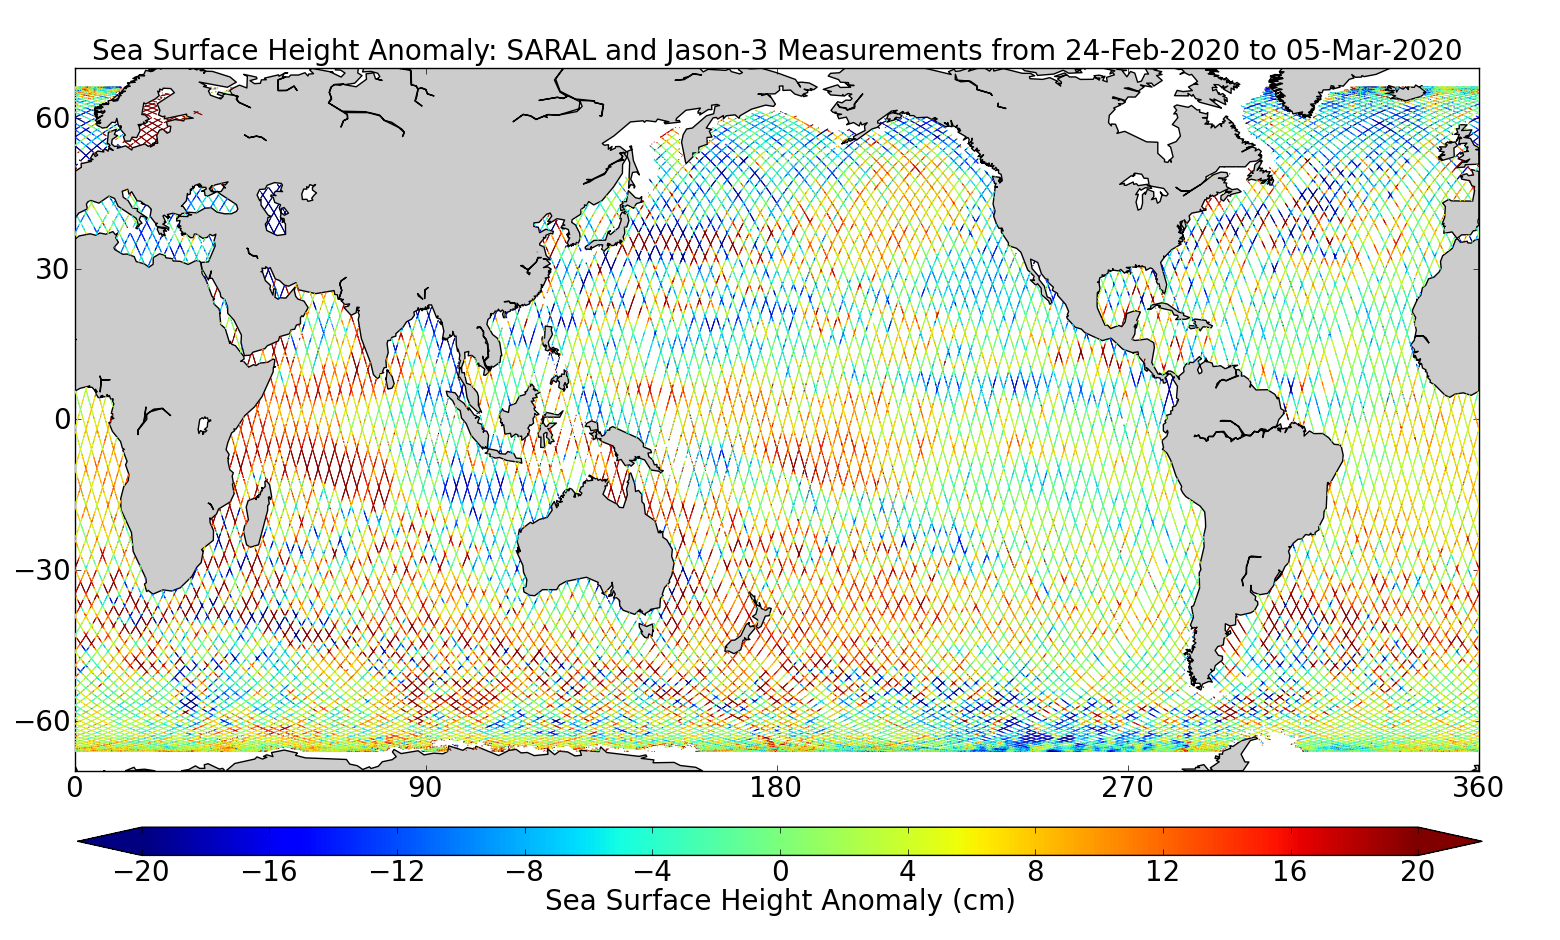 Sea Surface Height Anomaly: SARAL and Jason-3 Measurements from 24-Feb-2020 to 05-Mar-2020